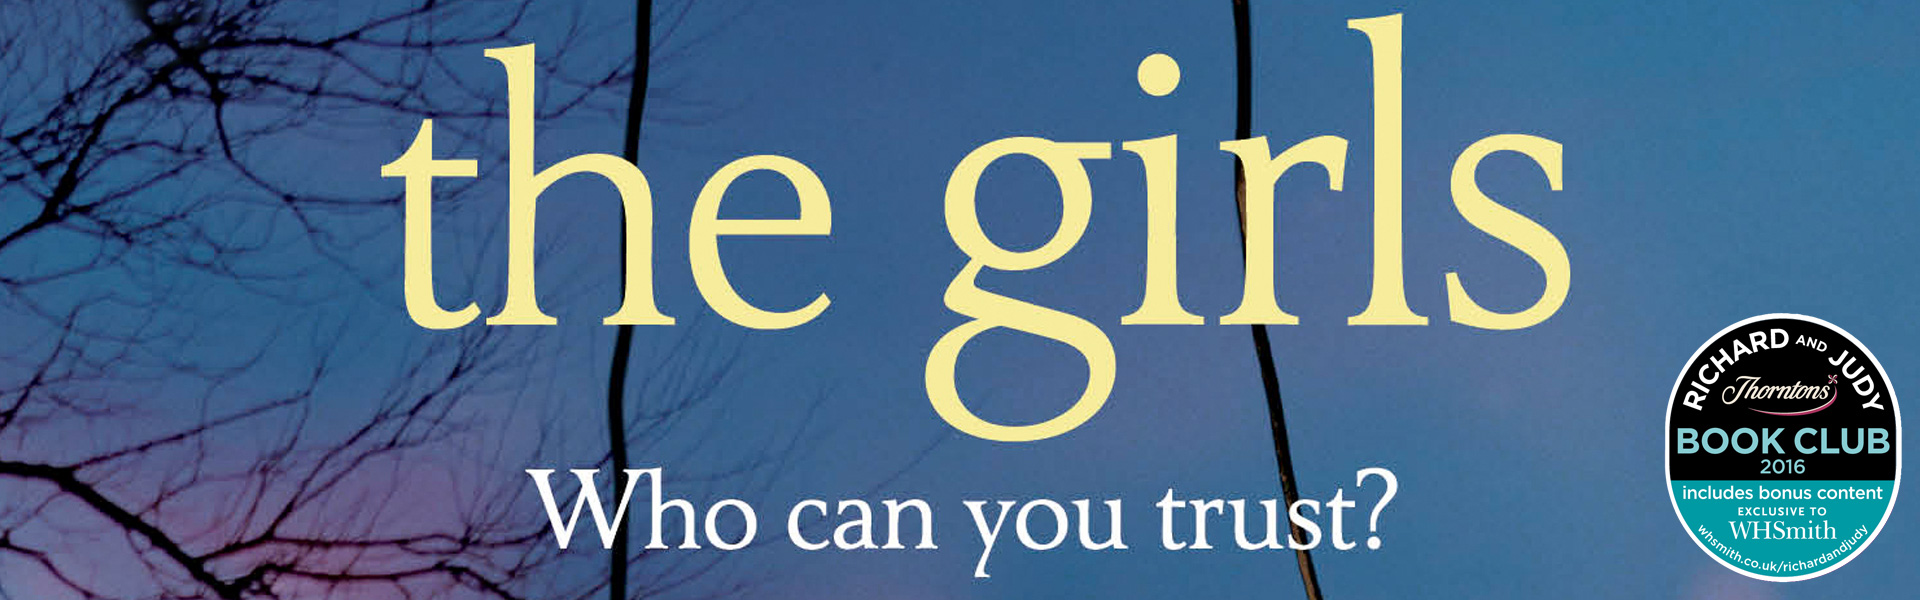 Book Club Questions for The Girls by Lisa Jewell